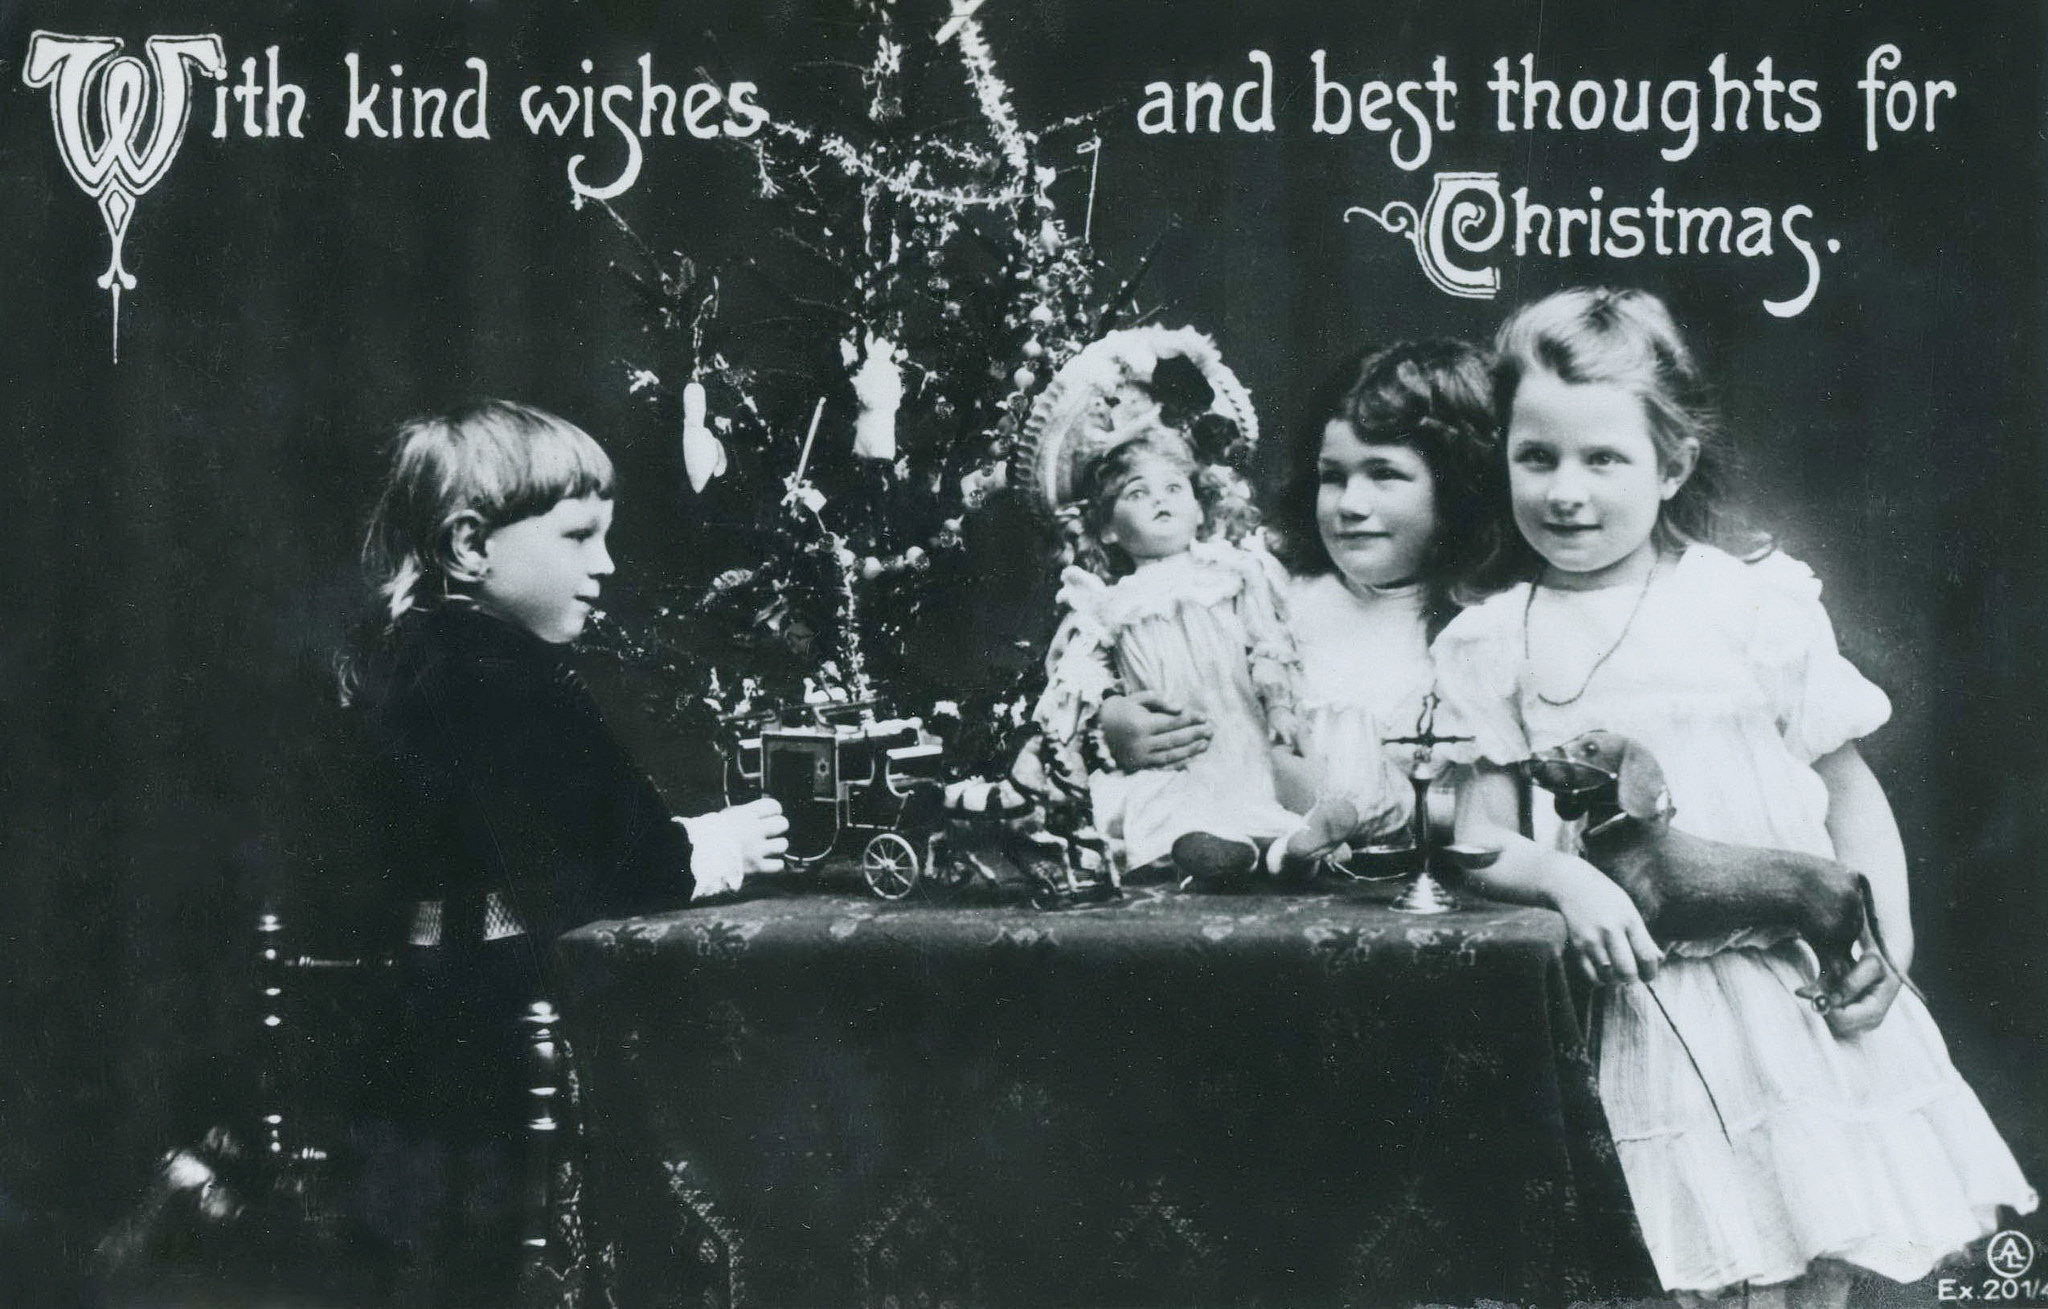 The Truth About Christmas.A Last Minute Gift The Truth About Christmas The Tyee